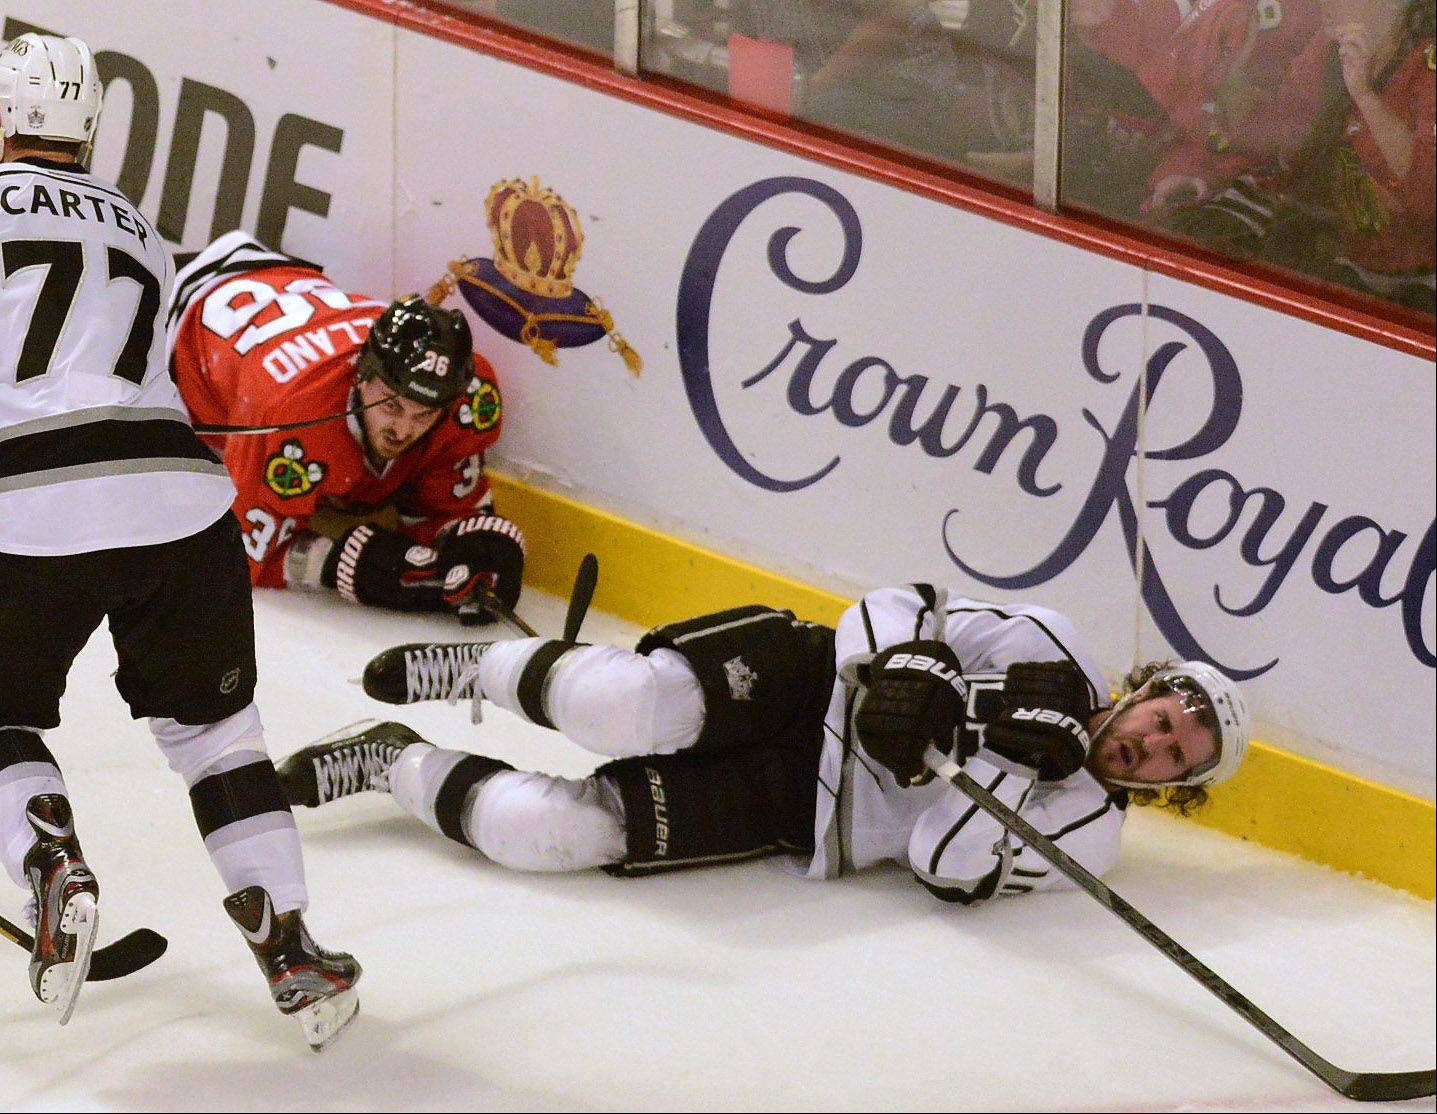 The Kings Mike Richards protests after being leveled by Dave Bolland in 3rd period action in game 1 of the Western Conference finals between the Chicago Blackhawks and the Los Angeles Kings.